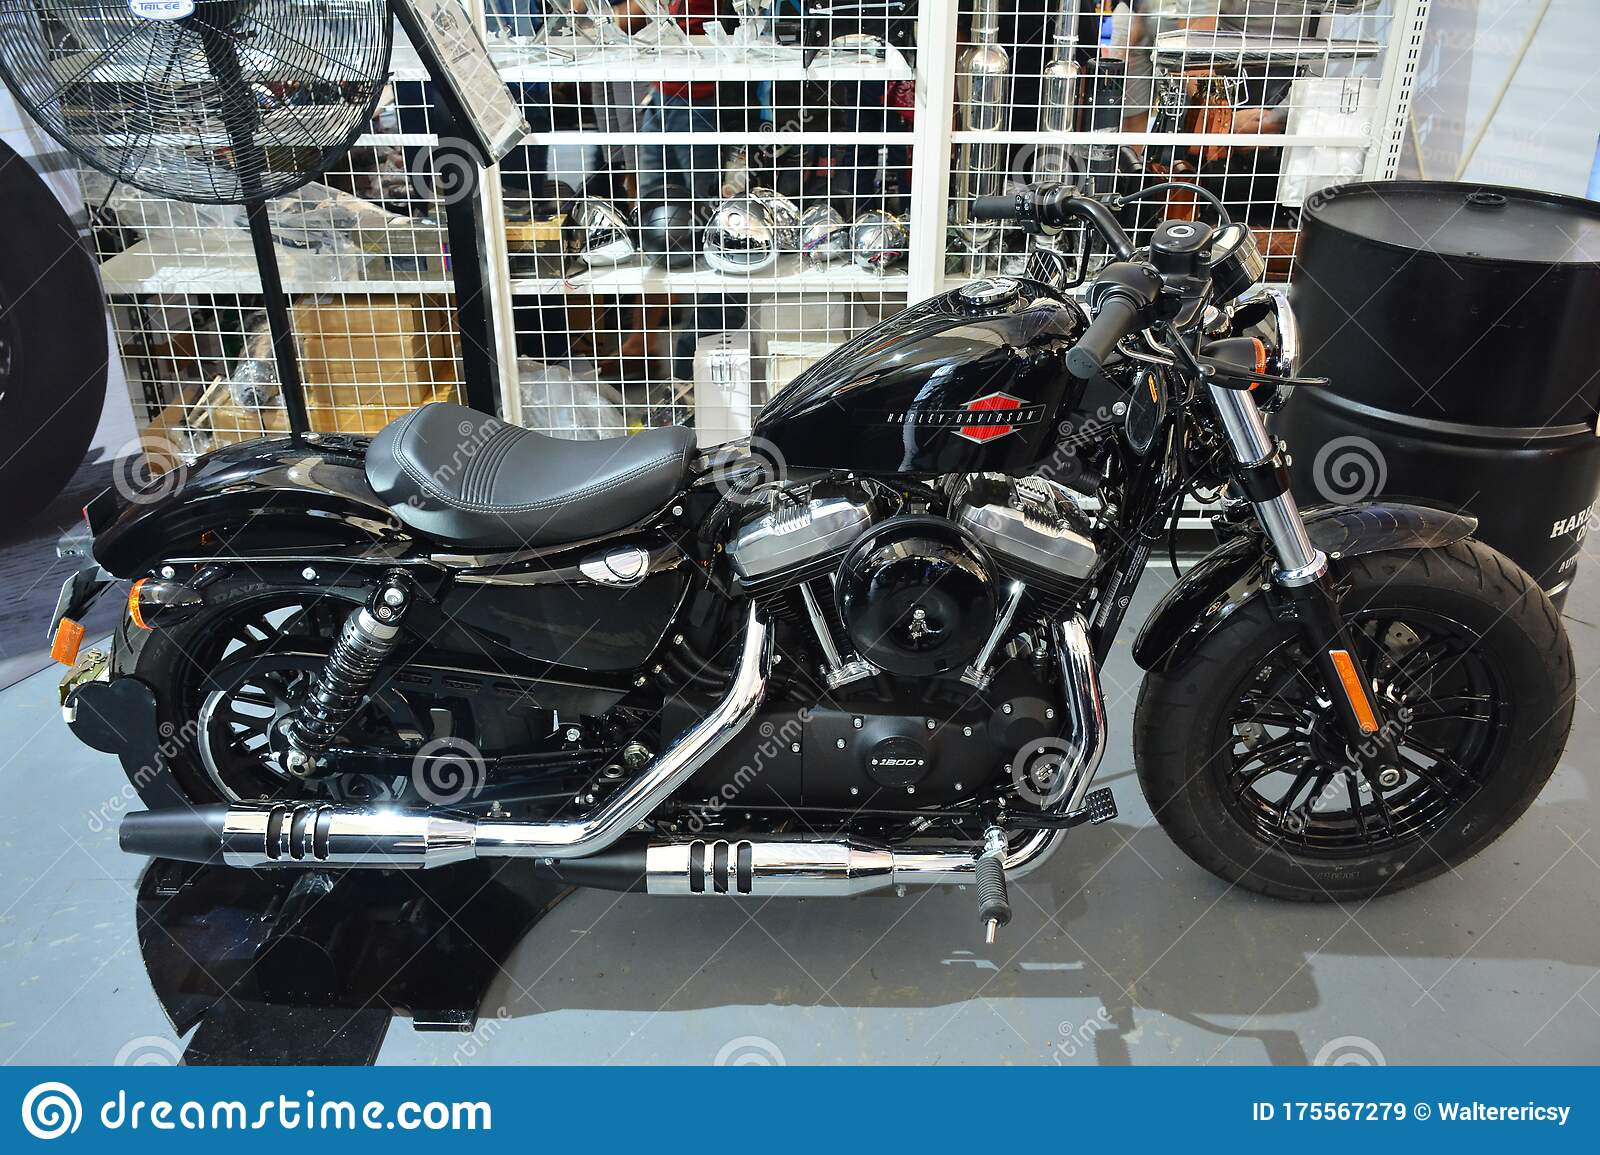 Harley Davidson 2020 Sportster Forty Eight At 2nd Ride Ph In Pasig Philippines Editorial Stock Image Image Of Balance Exhibit 175567279